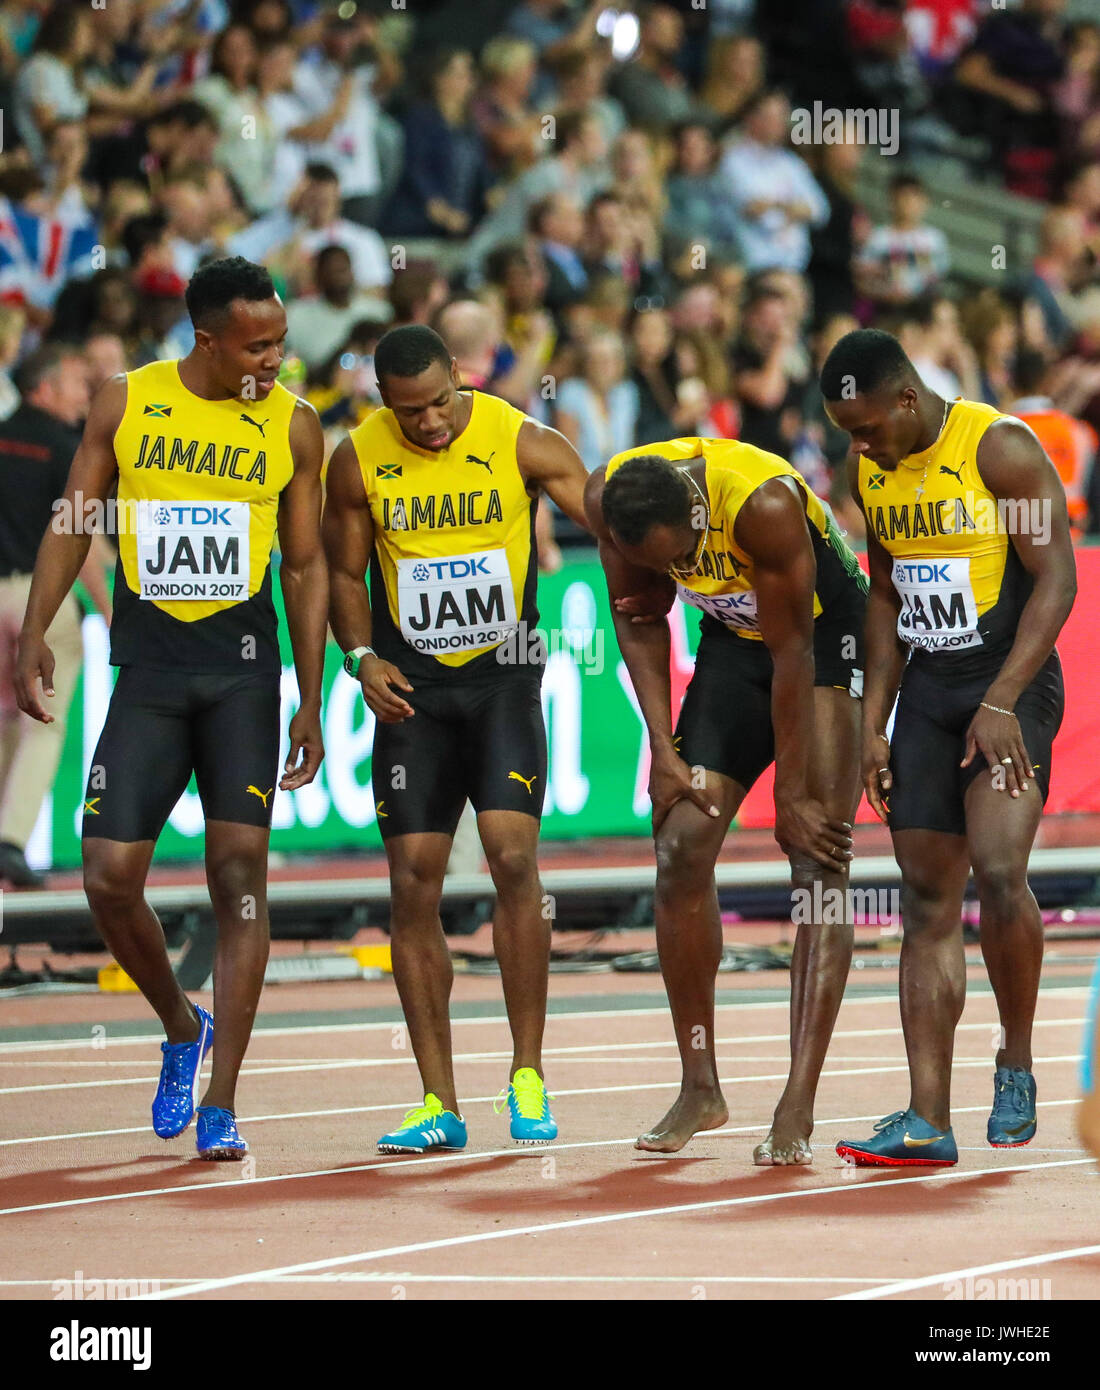 London, UK. 12th Aug, 2017. London, August 12 2017 . Usain Bolt stops in agony as he leaves the track with his Jamaican teammates after injuring his hamstring in the final leg of the men's 4x 100m relay on day nine of the IAAF London 2017 world Championships at the London Stadium. Credit: Paul Davey/Alamy Live News - Stock Image